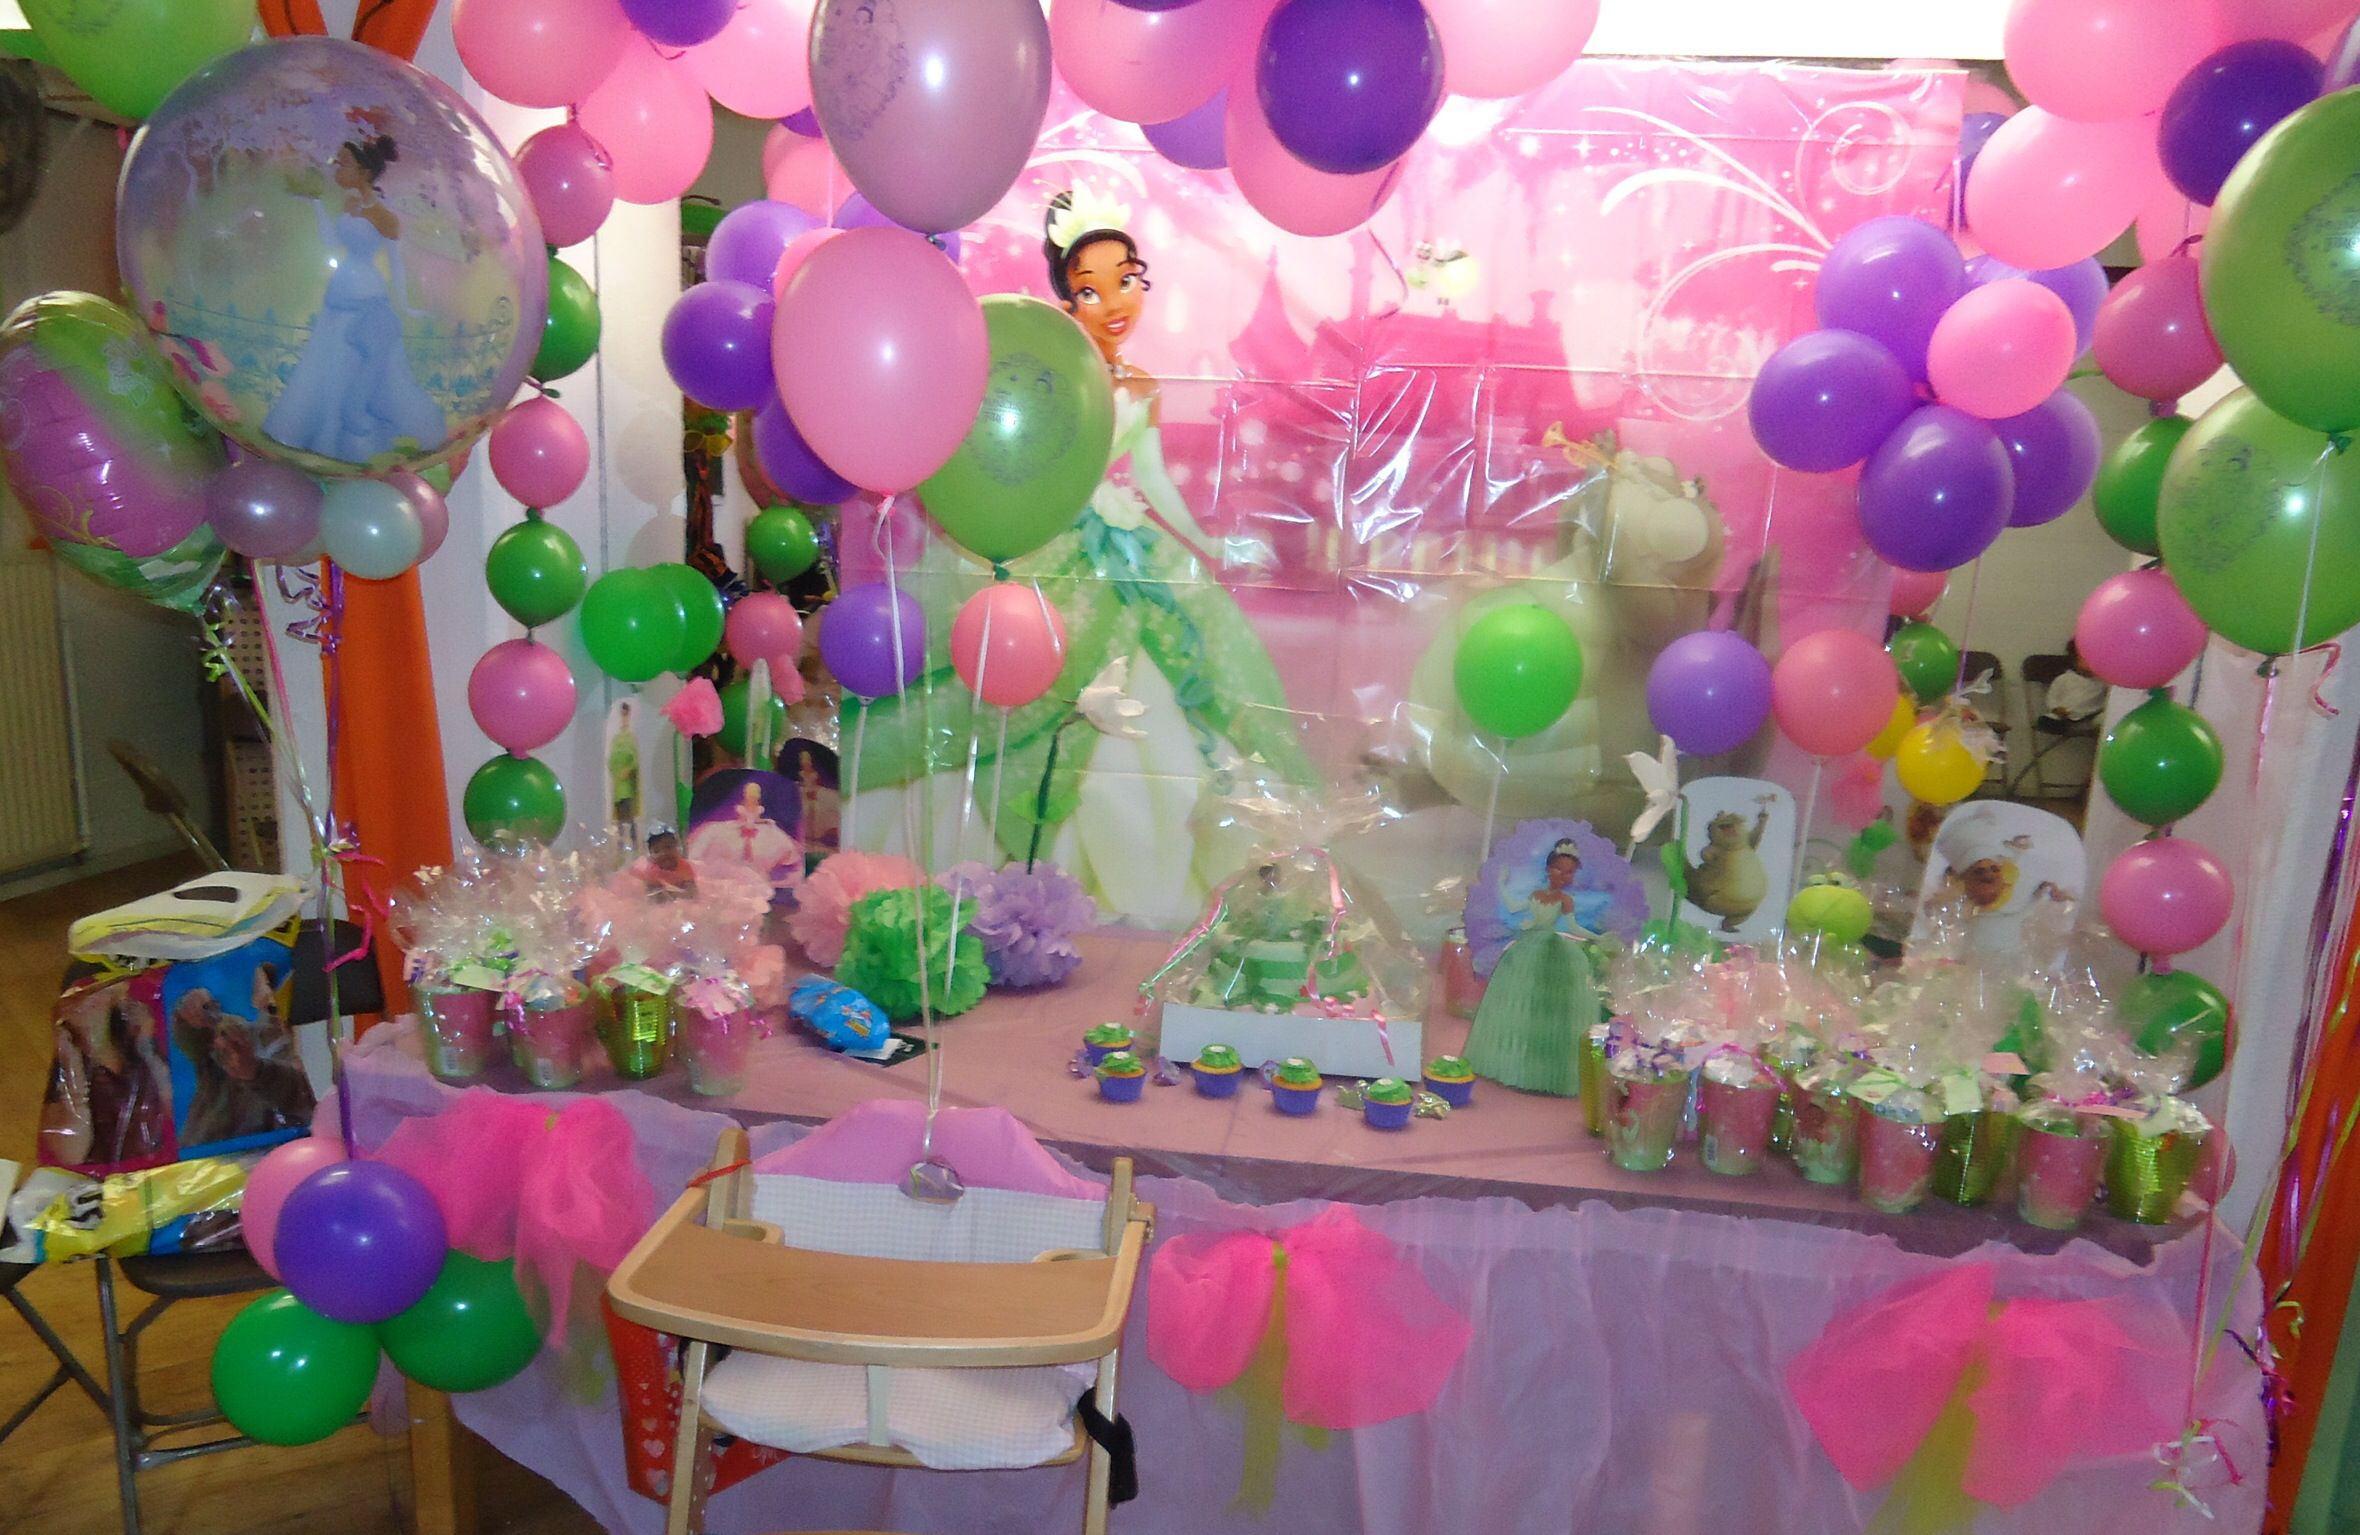 Princess Tiana Birthday Table Decoration Frog Party Decorations Girl Baby Shower Decorations Birthday Table Decorations